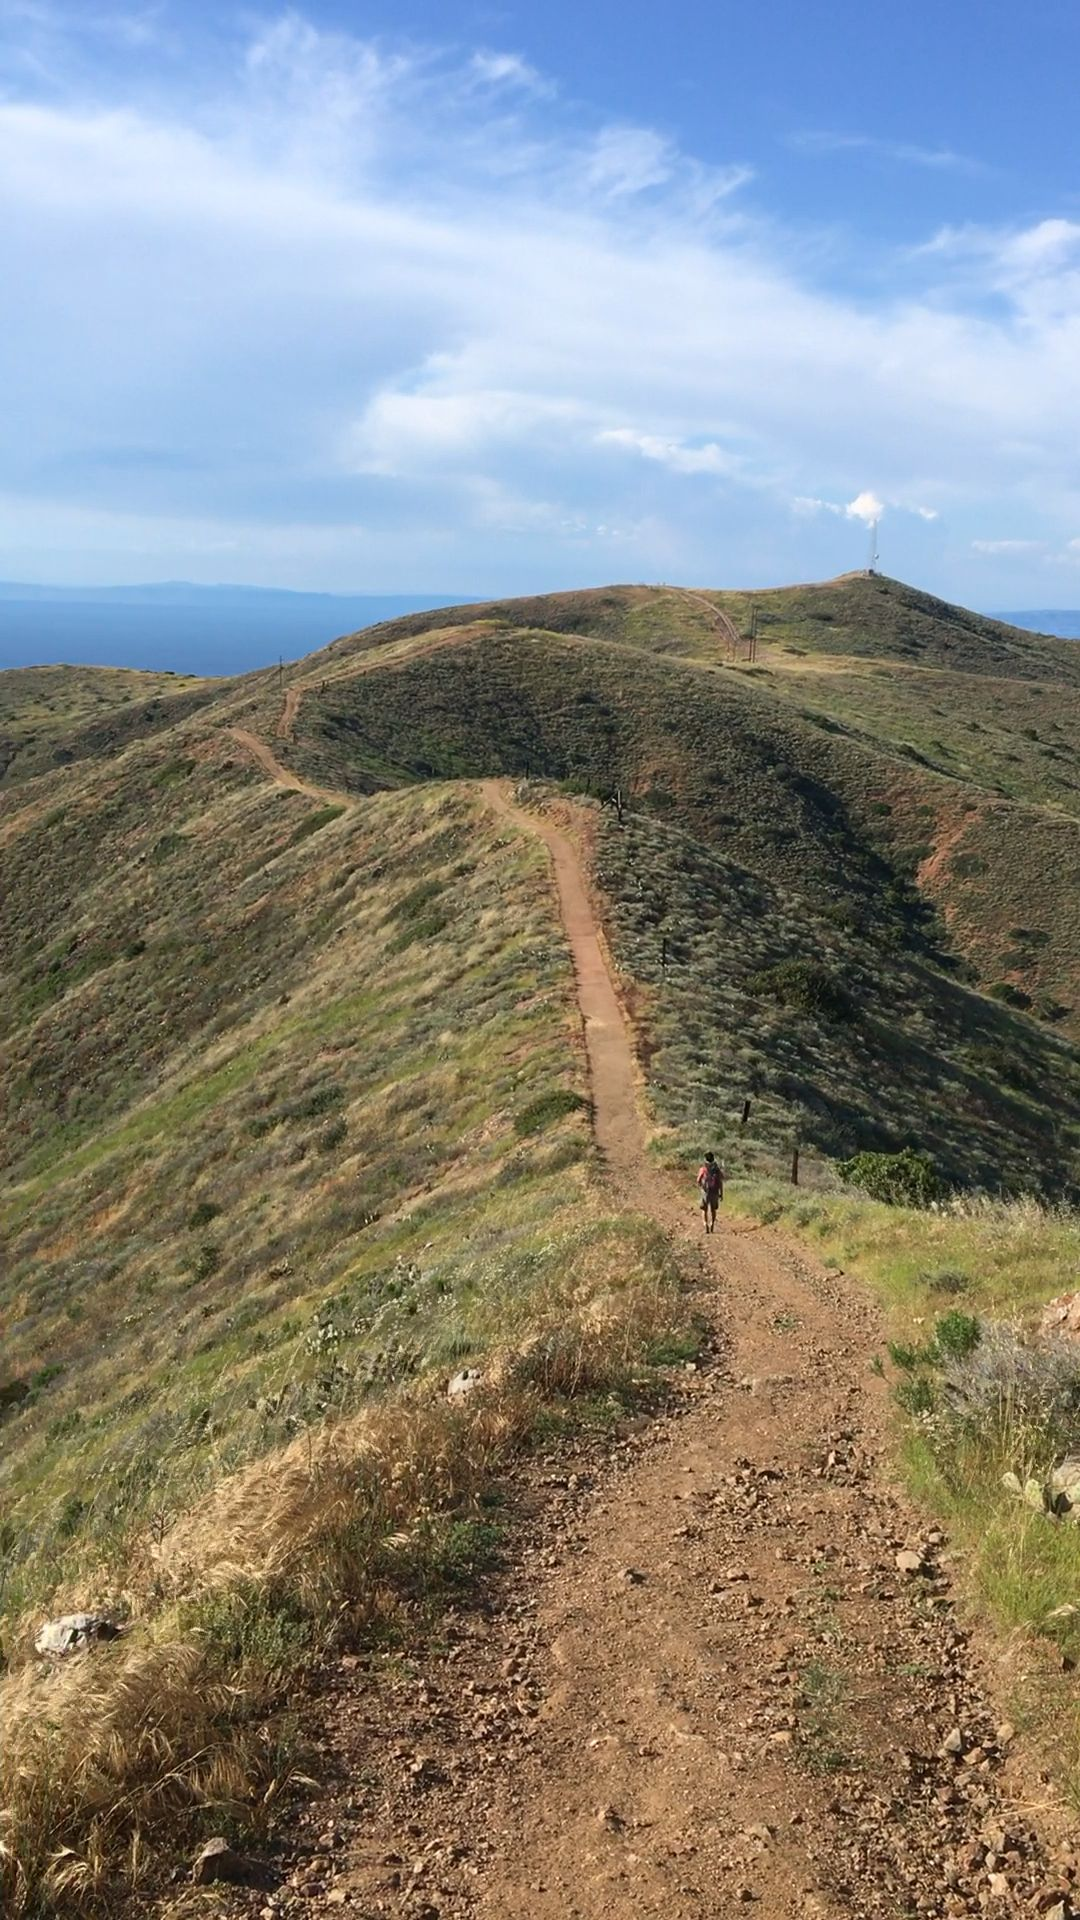 Backpacking The Trans-Catalina Trail: All You Need To Know